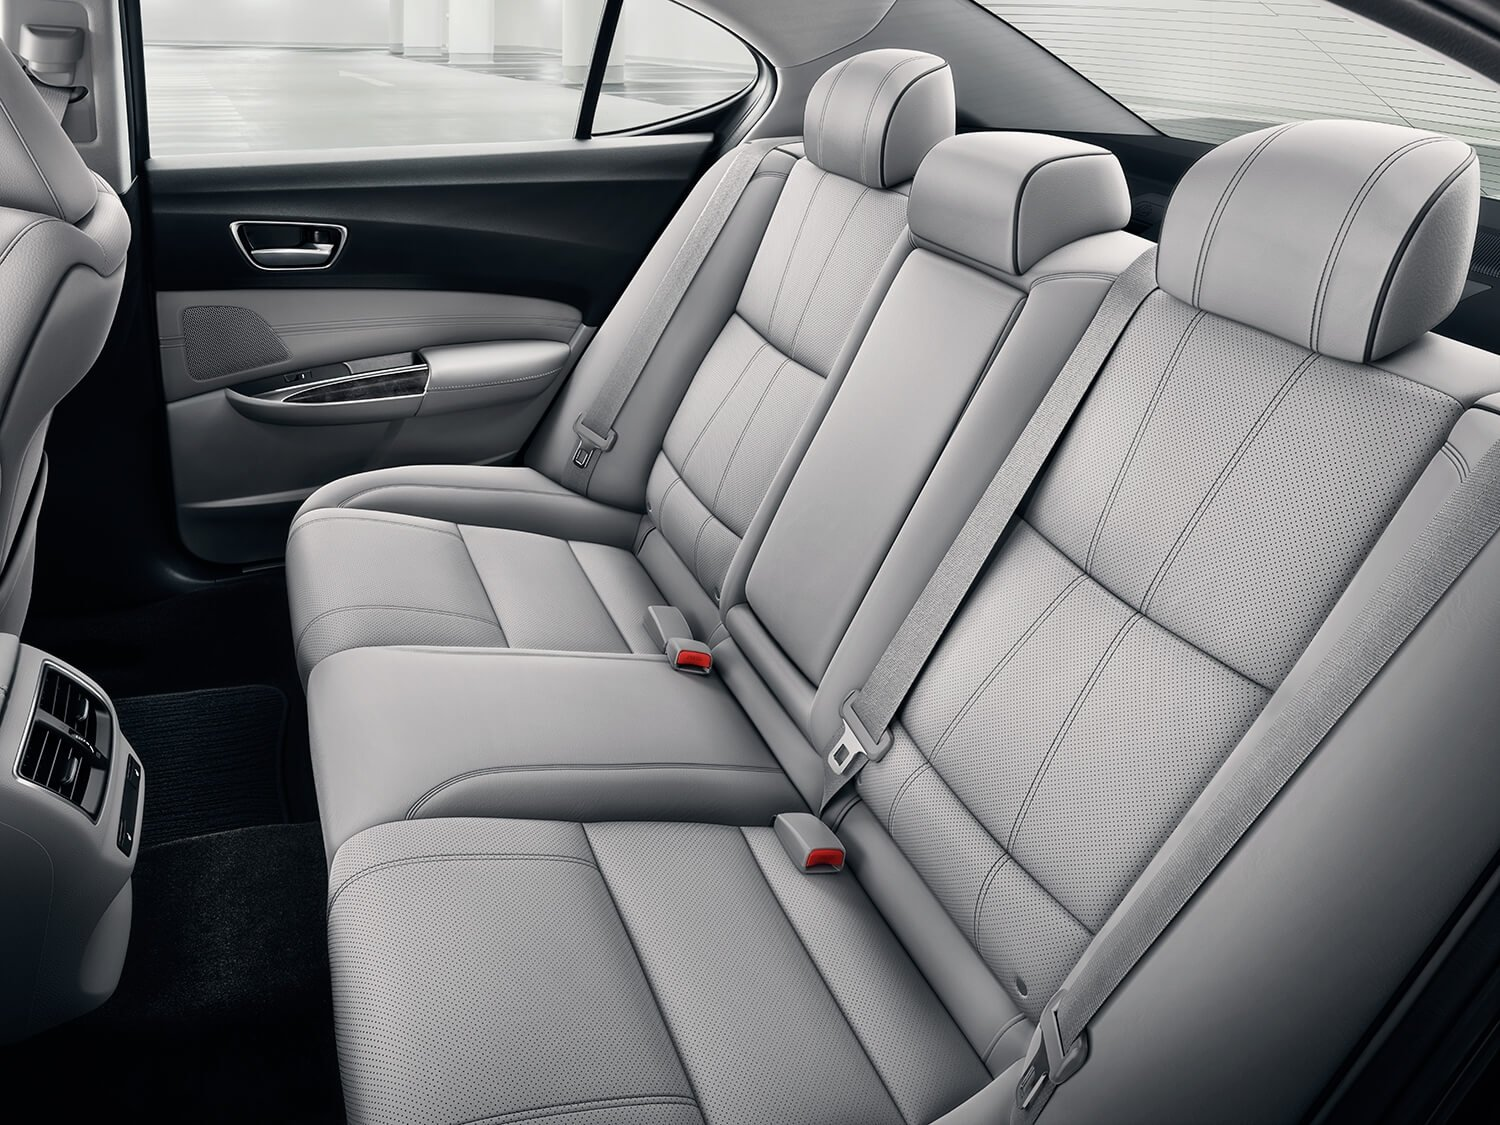 2018 Acura TLX Interior Rear Seating